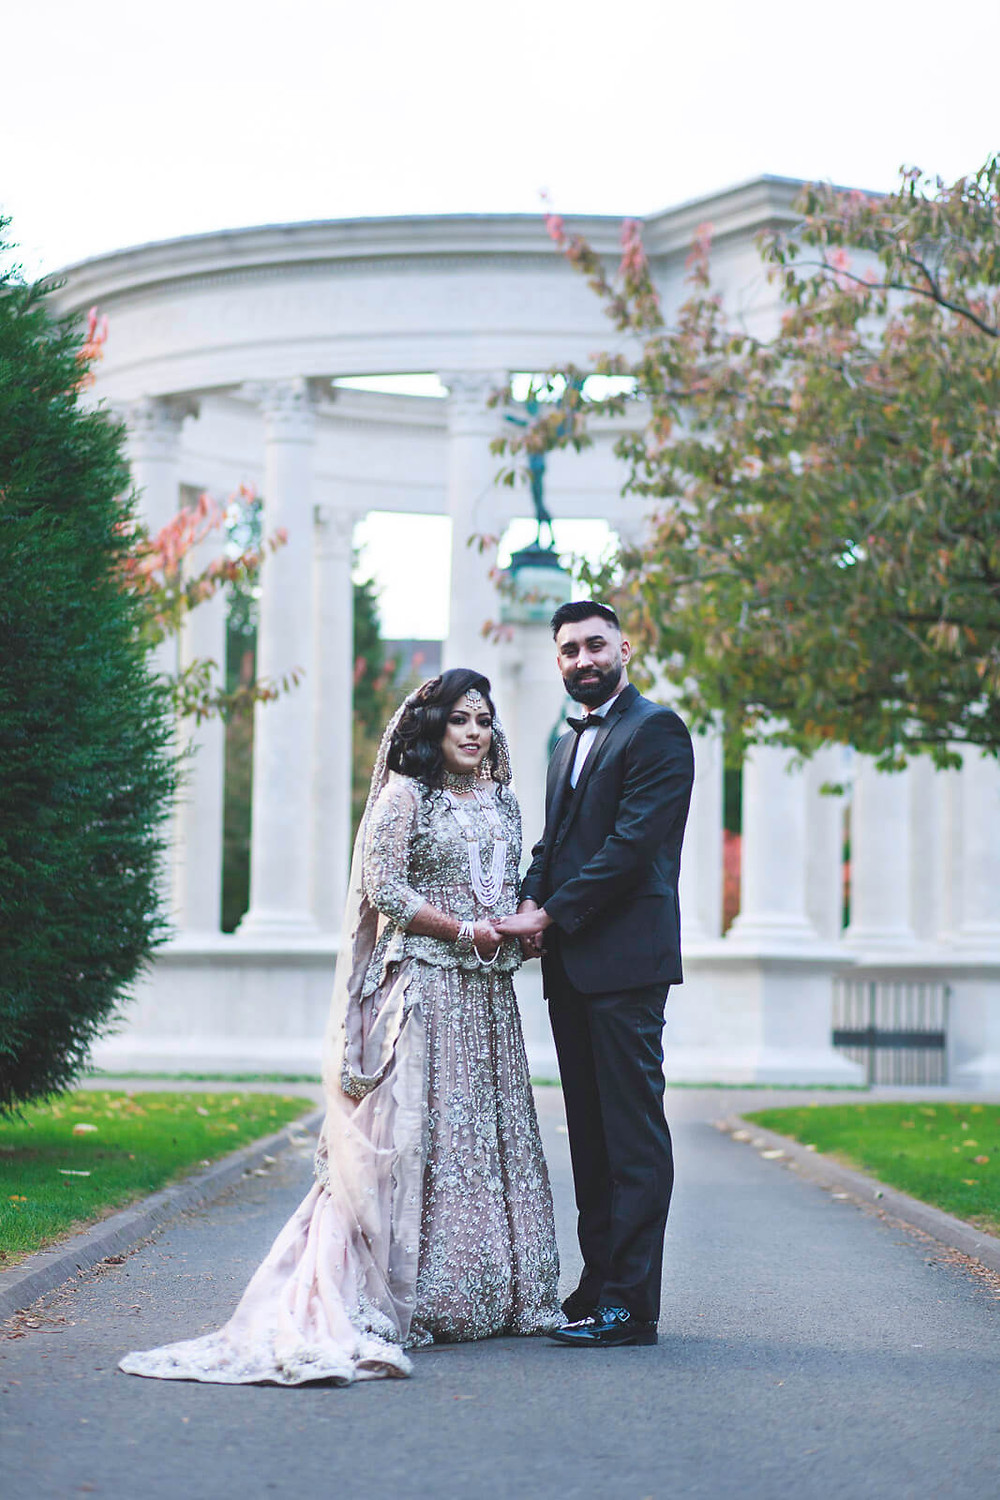 Purva & Wasif's Muslim wedding photo in Cardiff, South Wales | Wedding Photography at Cardiff City Hall